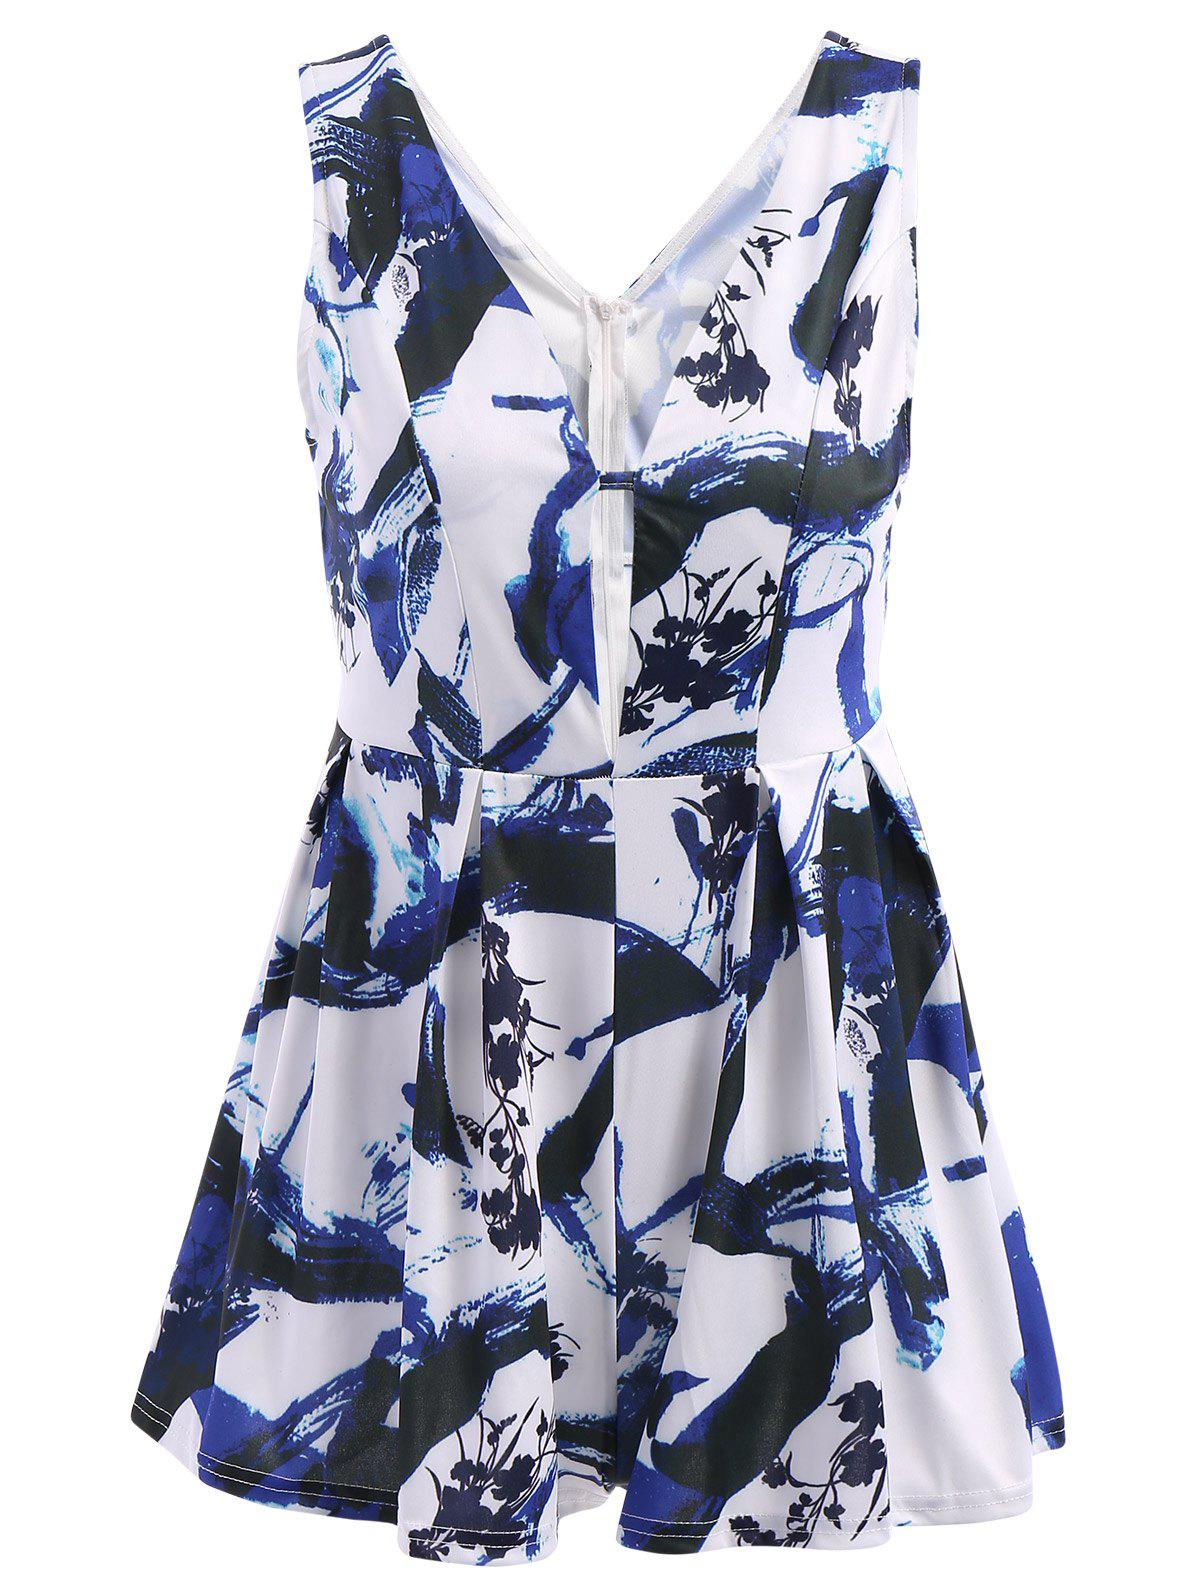 Stylish Women's Plunging Neckline Floral Print Sleeveless Romper - BLUE M